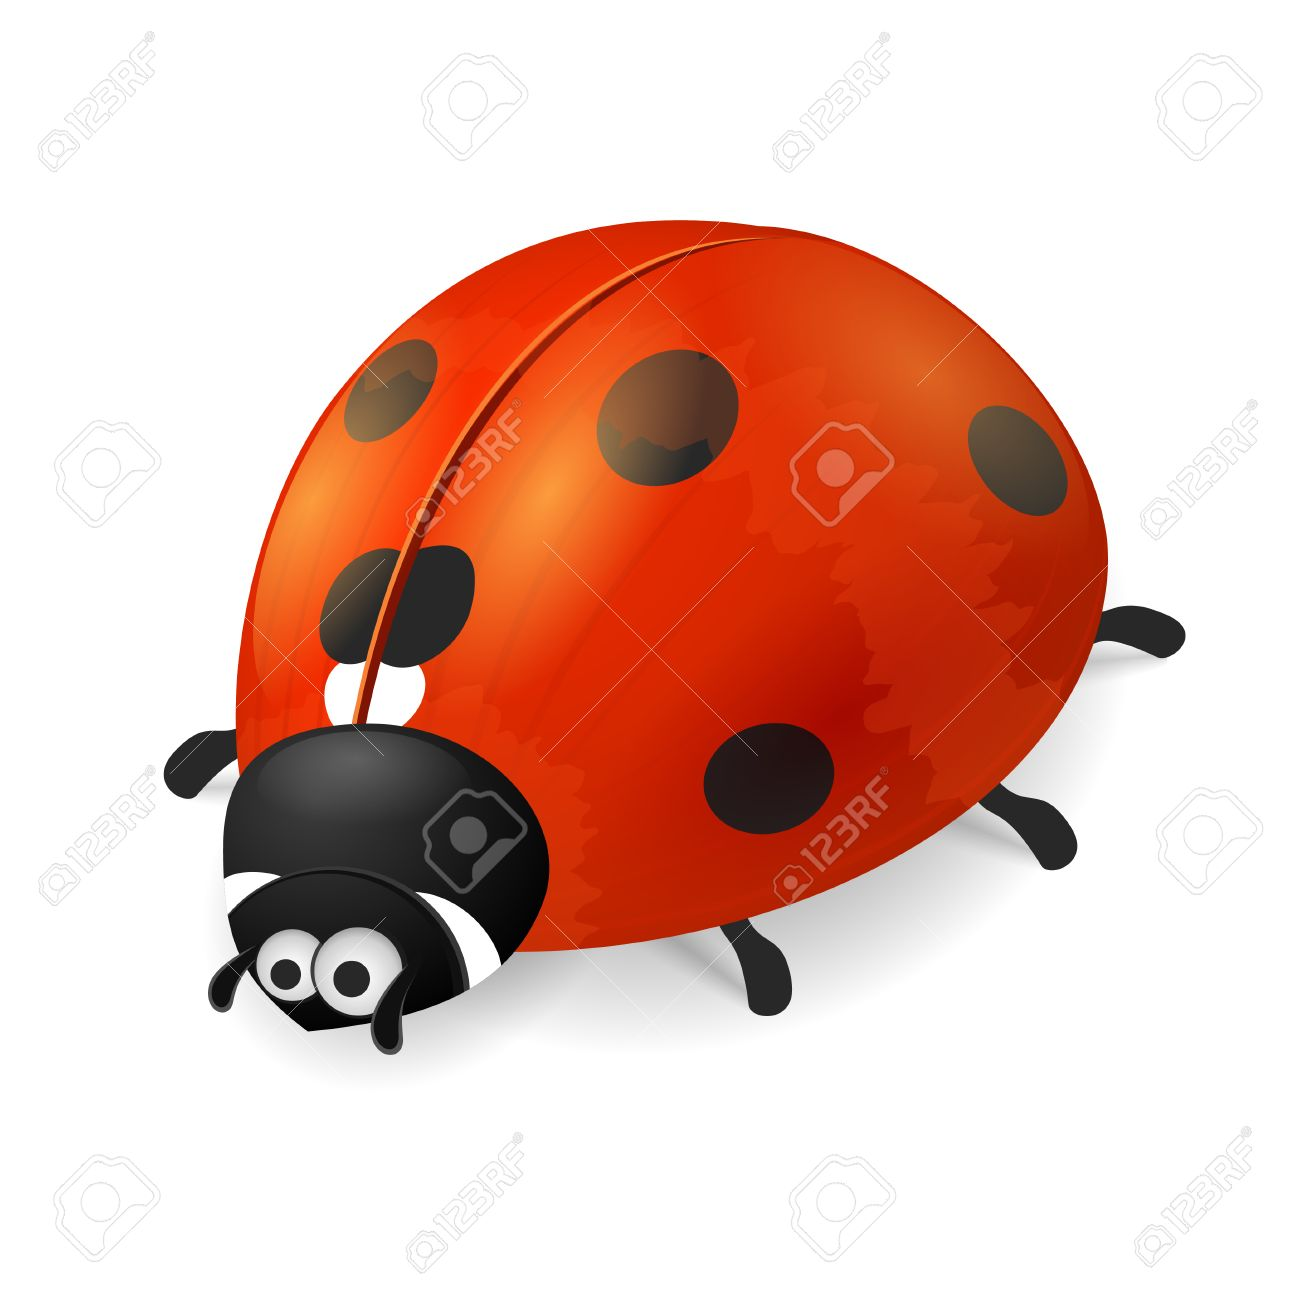 ladybird on white background cute cartoon ladybug icon royalty